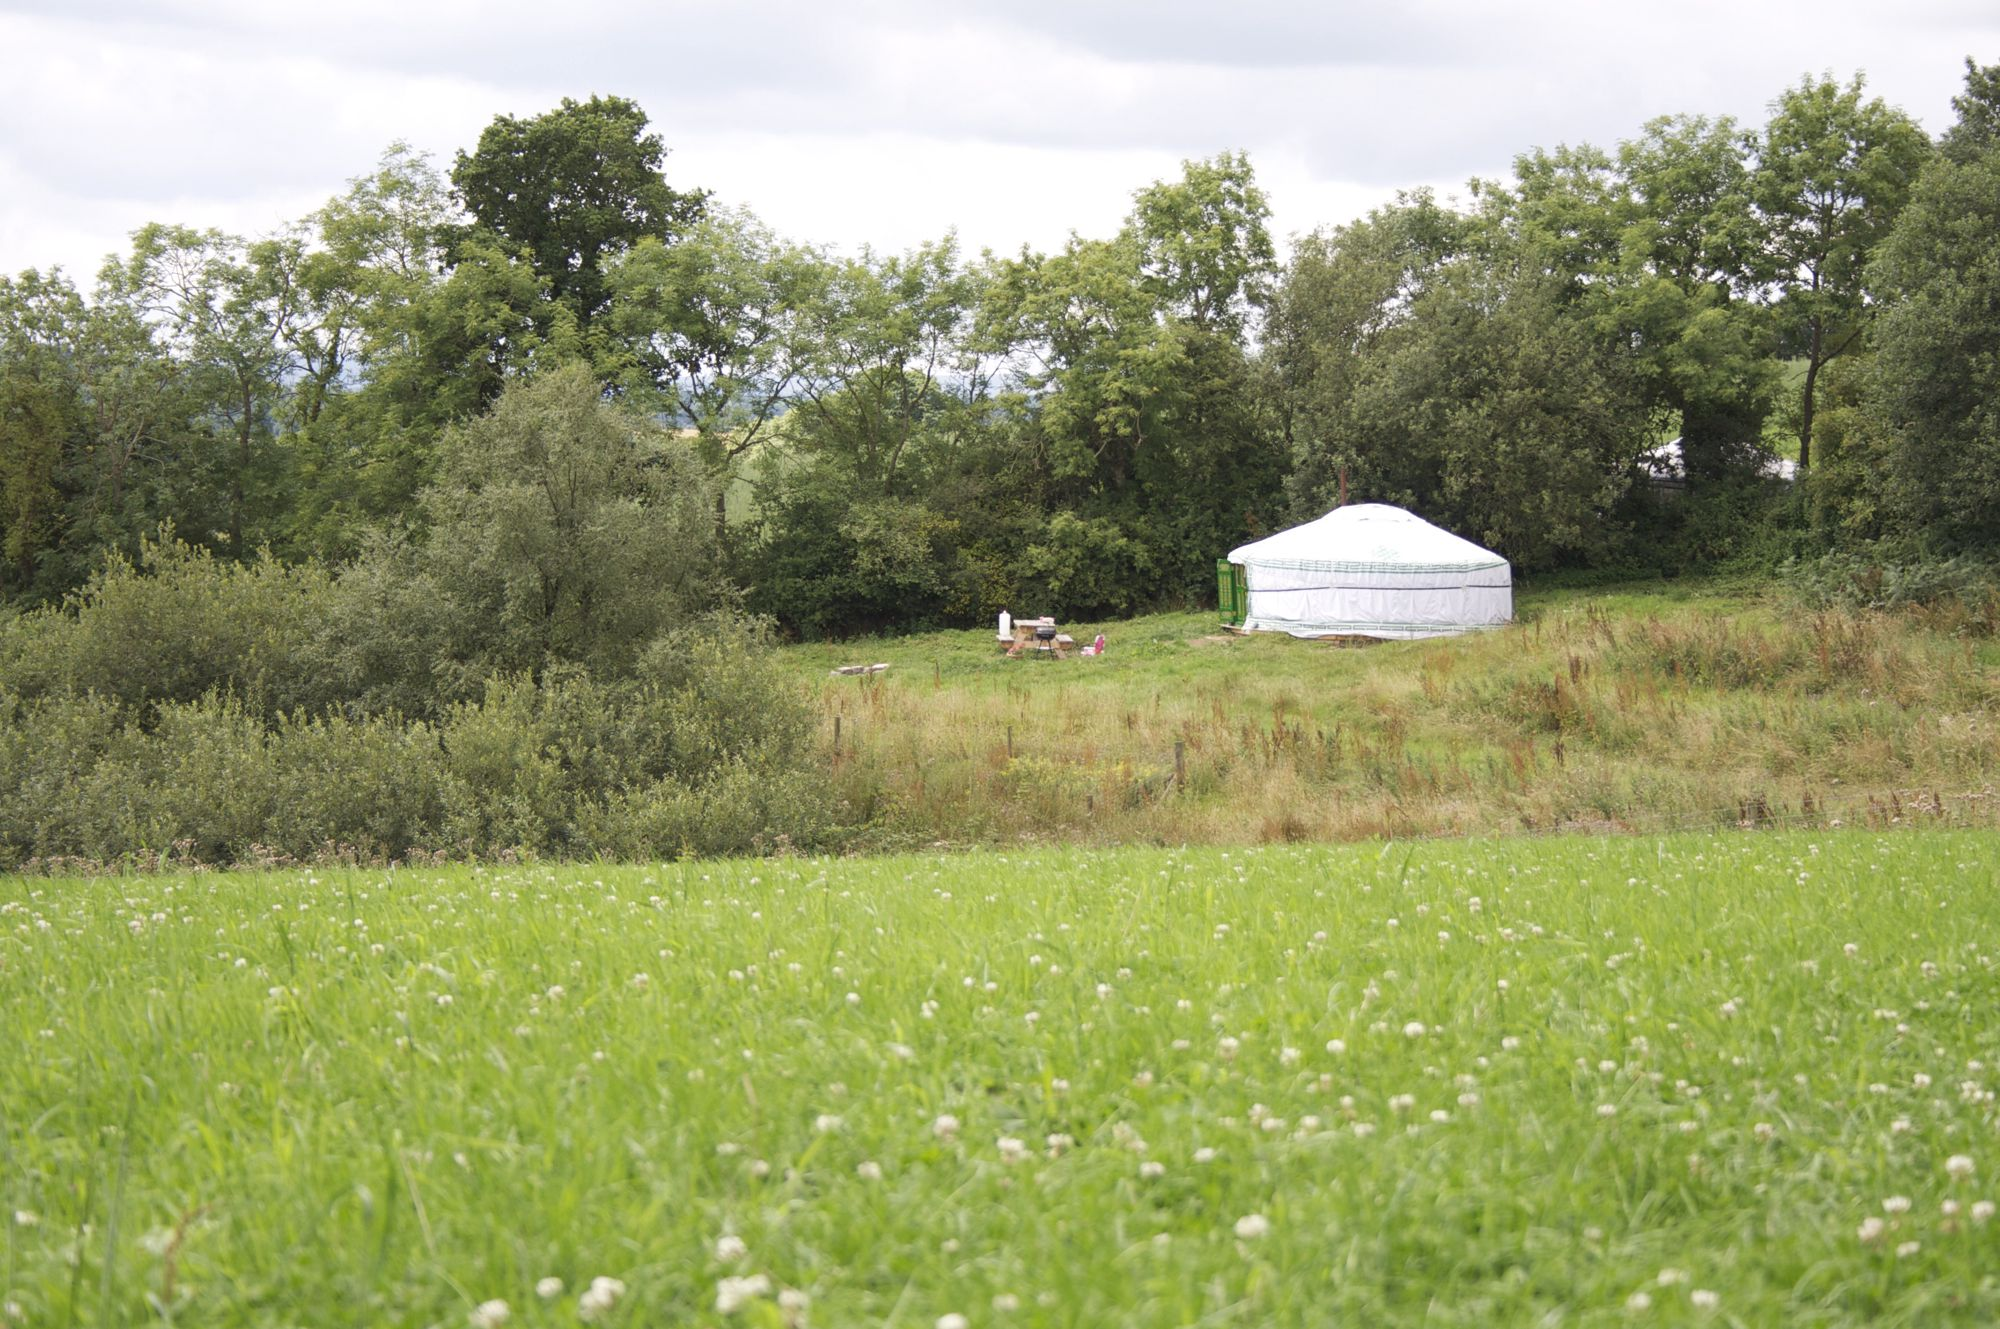 Glamping in Devon: Luxury camping and glamping on an organic Devonshire farm just north of Dartmoor with wonderful views.